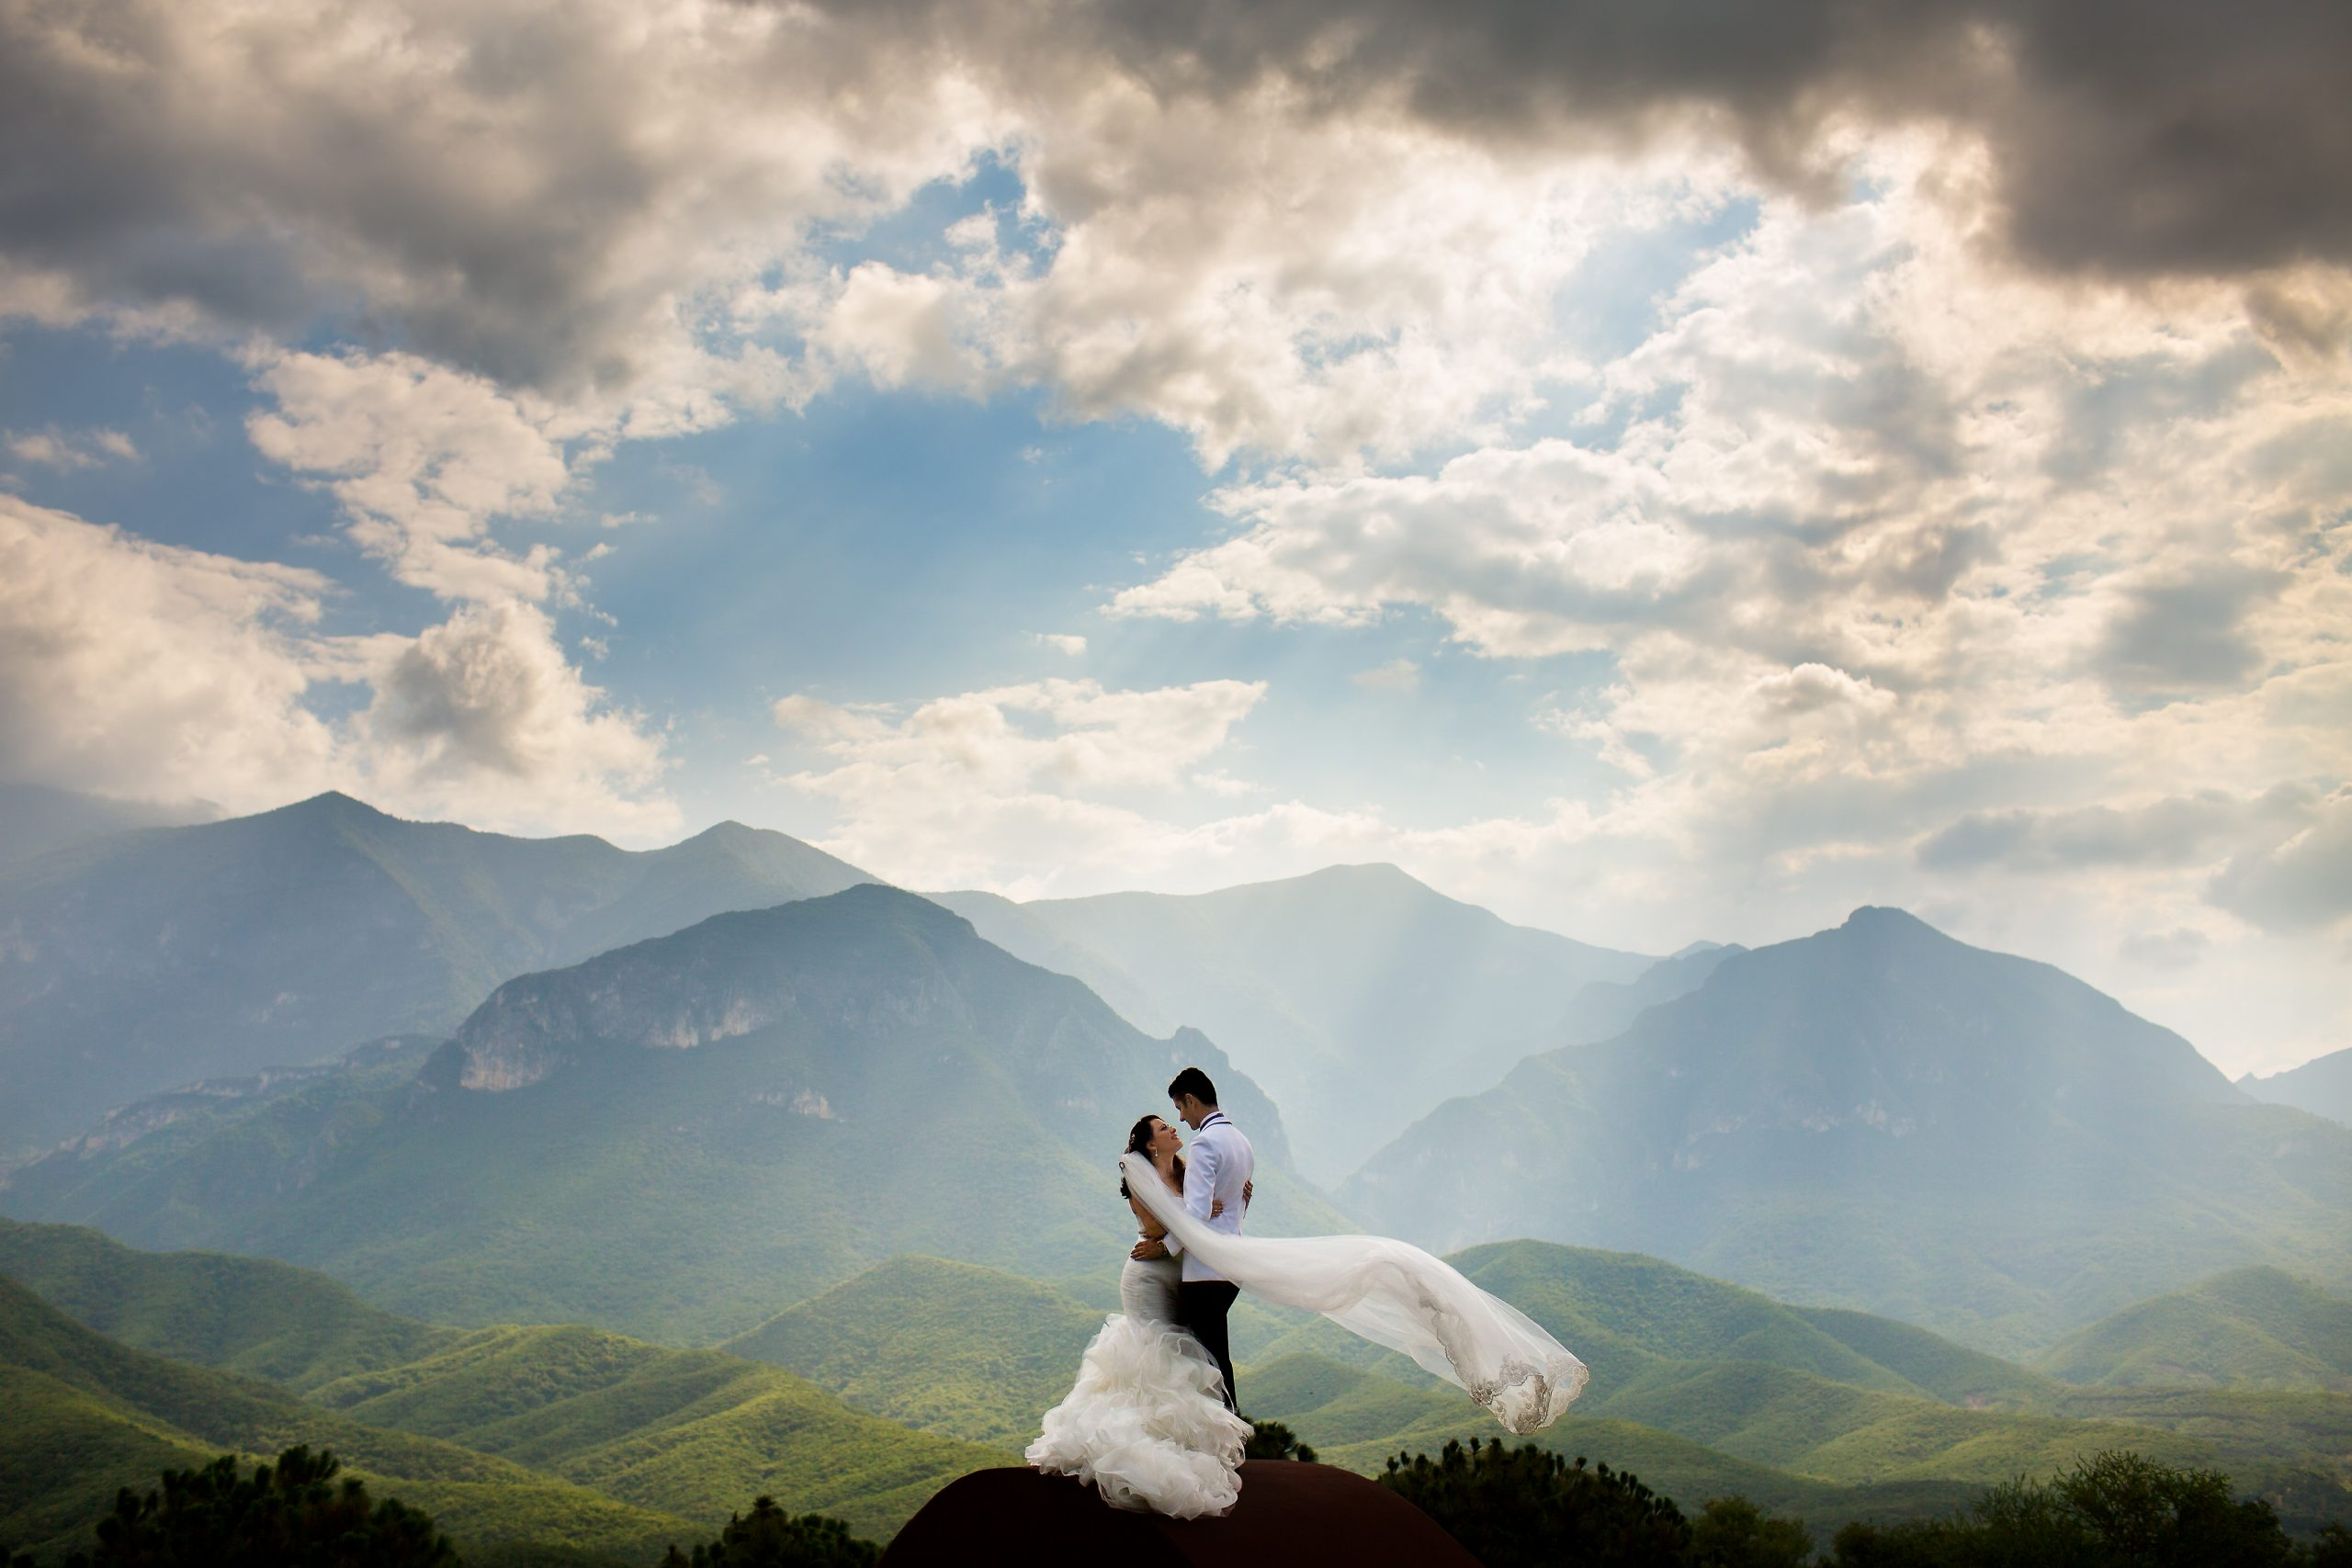 Bride and groom embrace in front of mountain scenery as sun rays shine through clouds